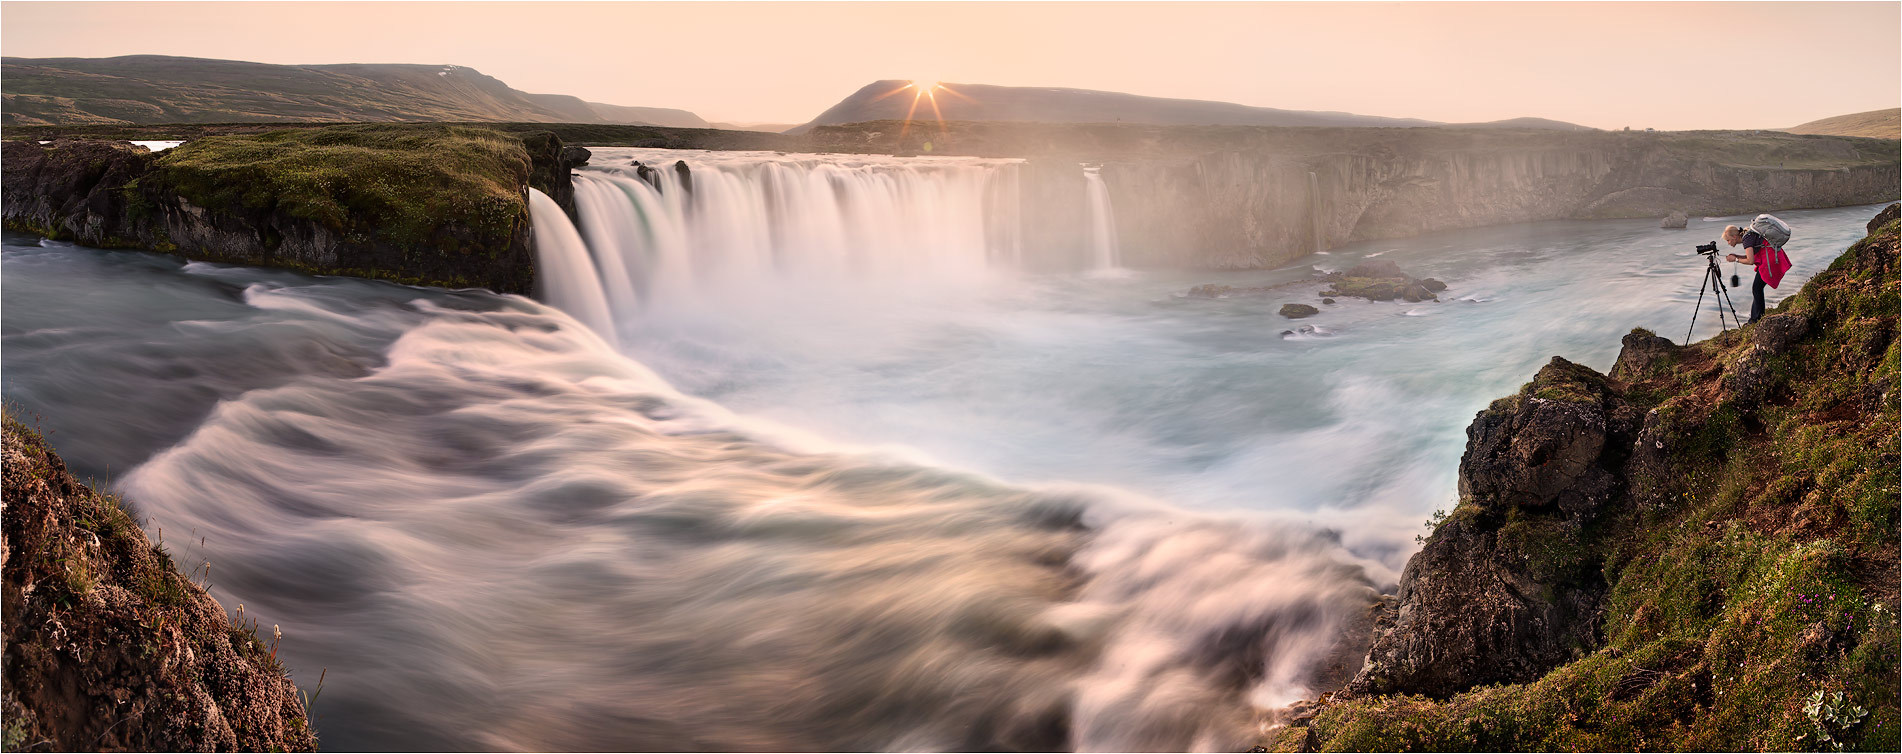 Waterfall and the cameraman | waterfall, cameraman, sunrise, haze